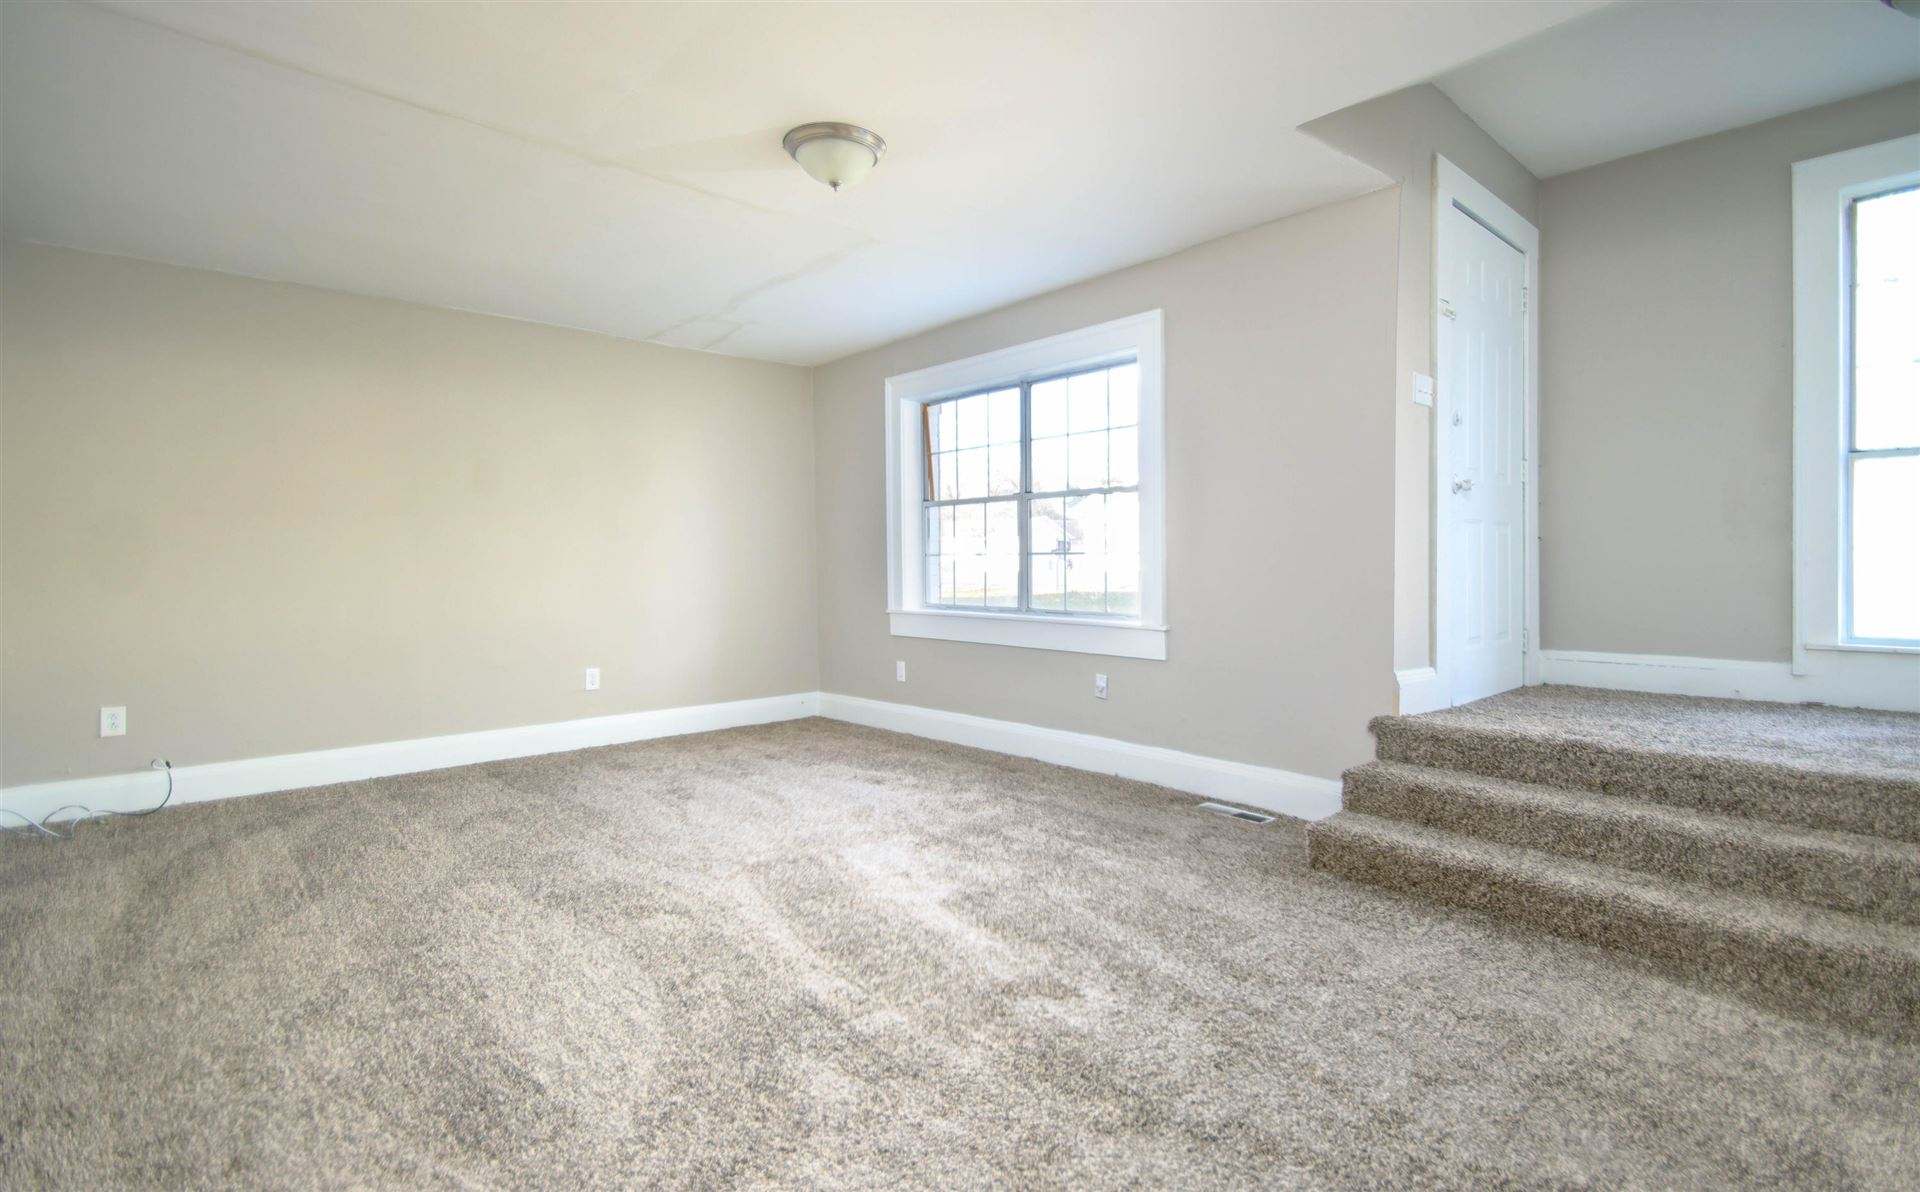 Photo of 2400 Wilson Ave, Knoxville, TN 37915 (MLS # 1140214)